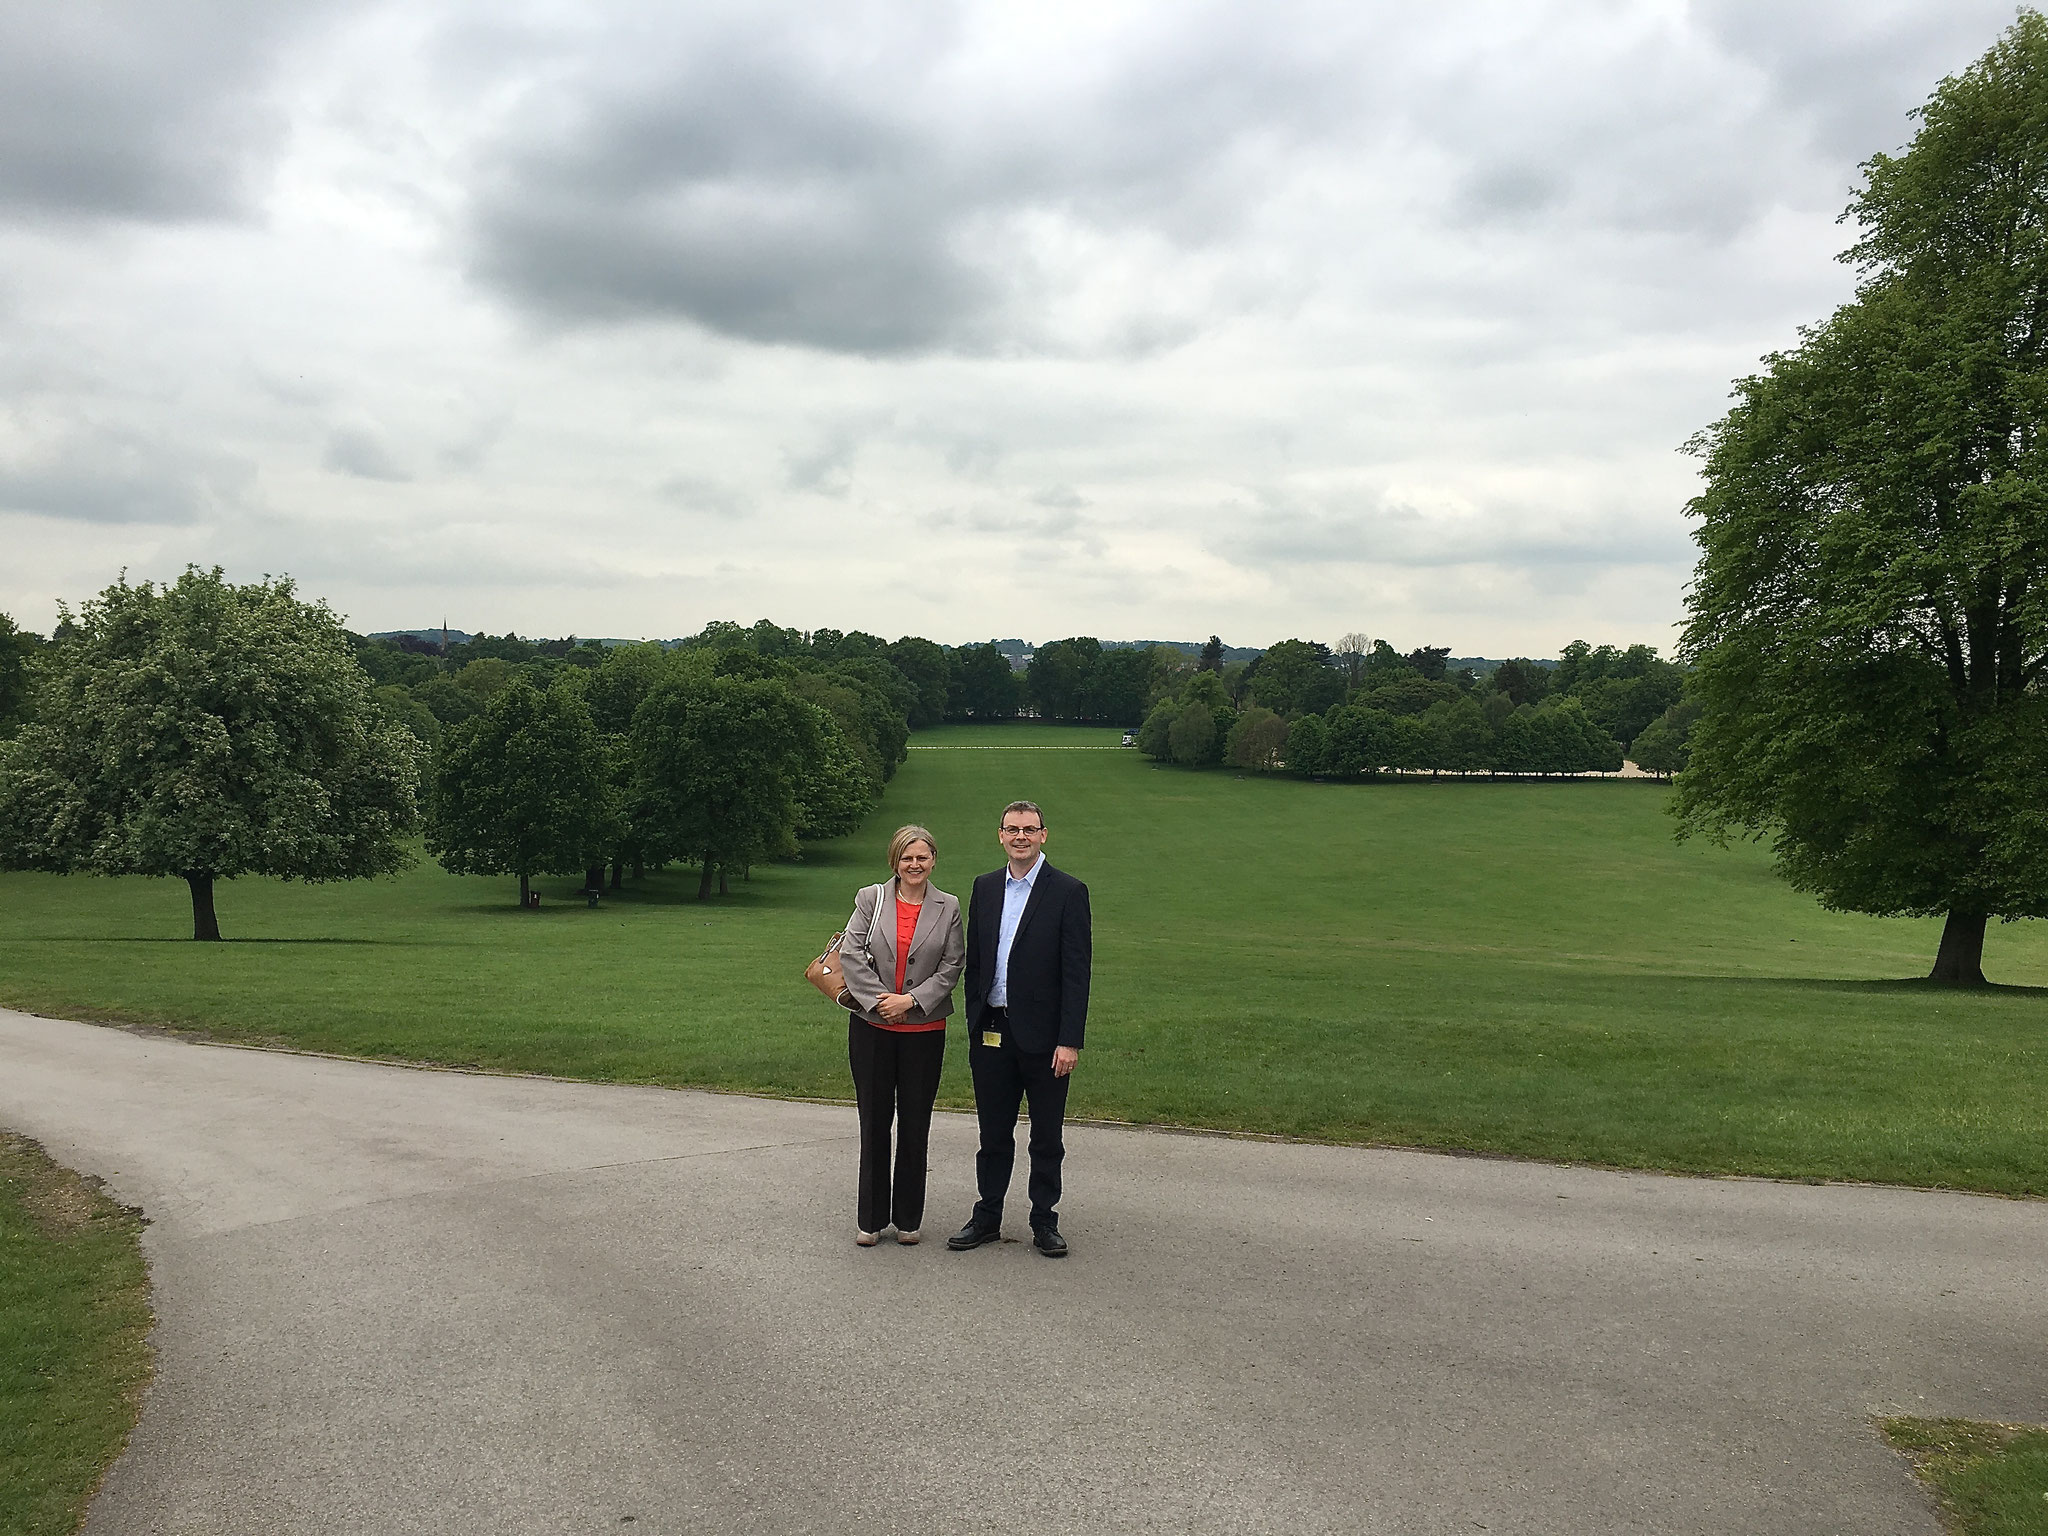 Drs. Sharon Mc Kenna and Nigel Mongan, Wollaton Hall